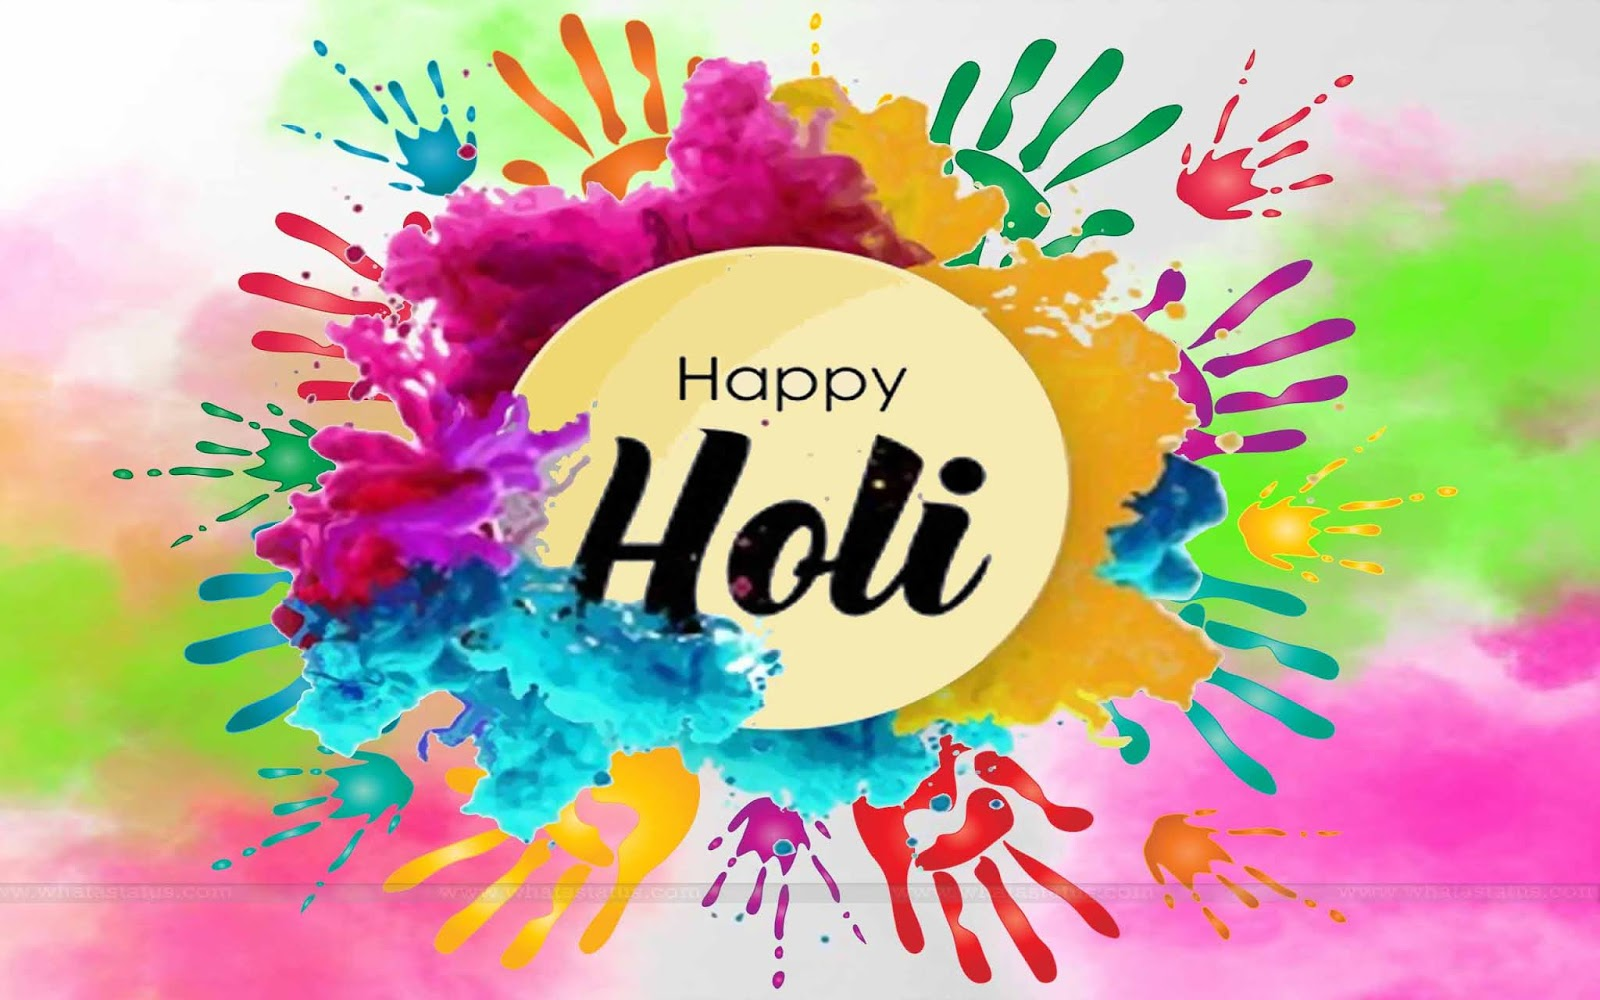 Holi-Celebration-colourful-image